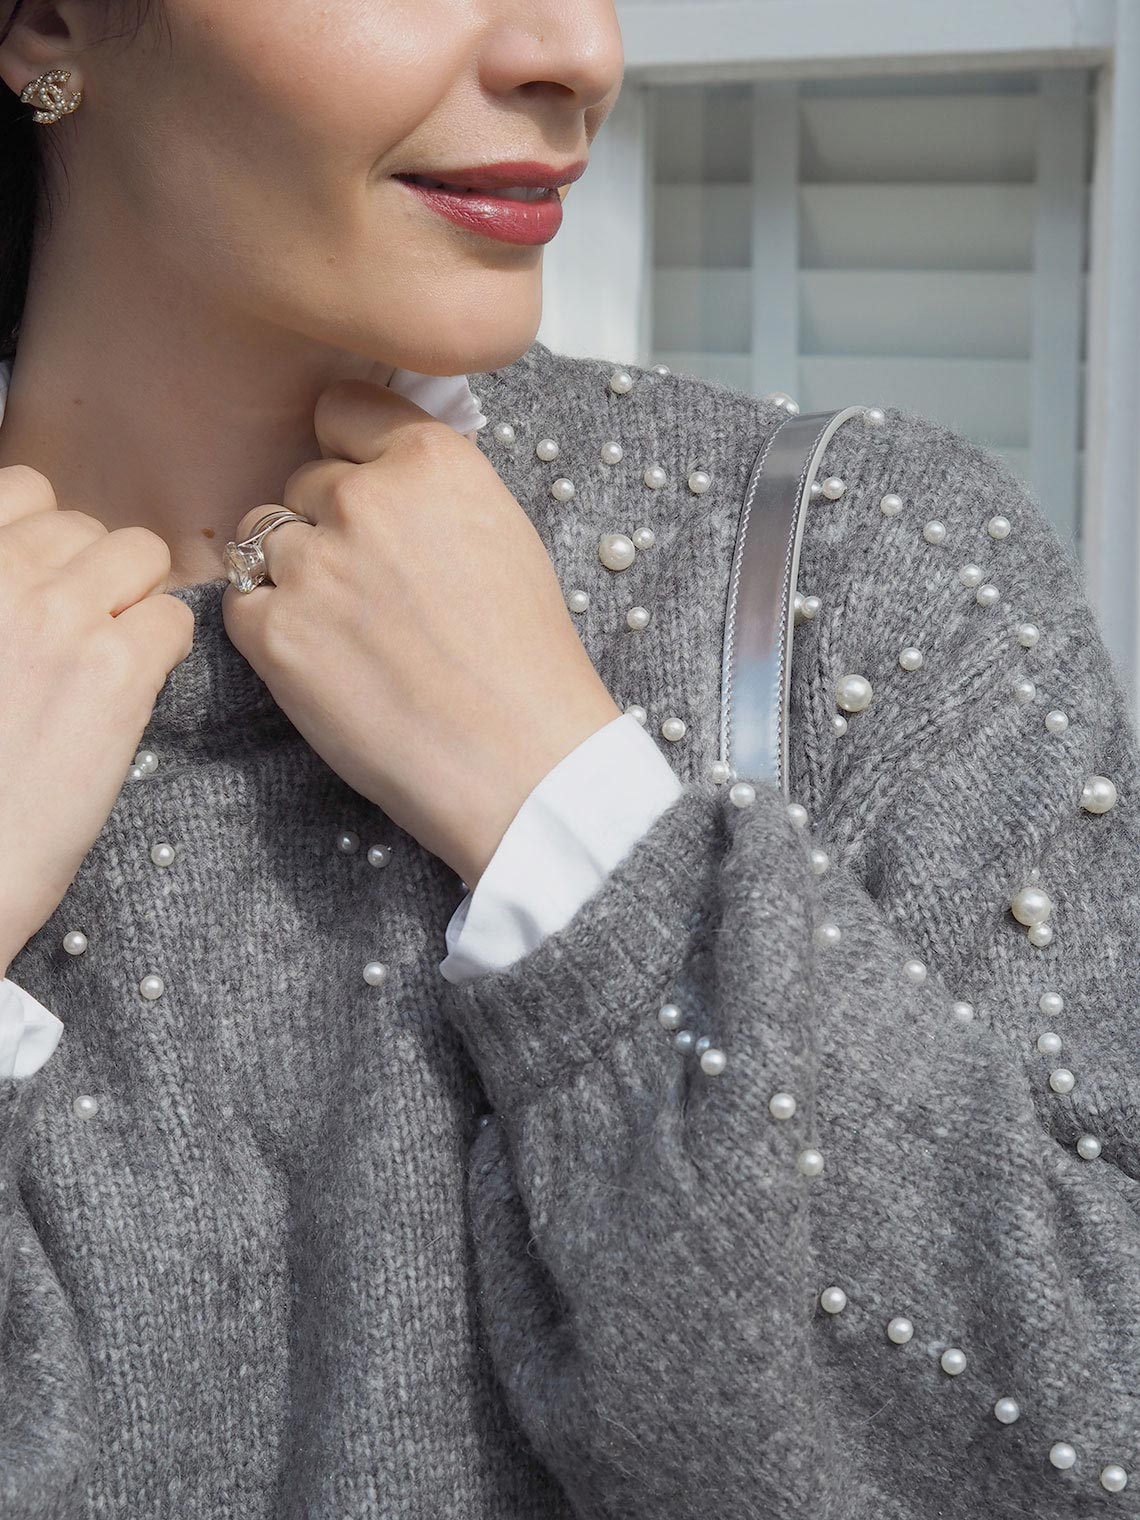 Knitwear trends grey sweater with pearls embellishment